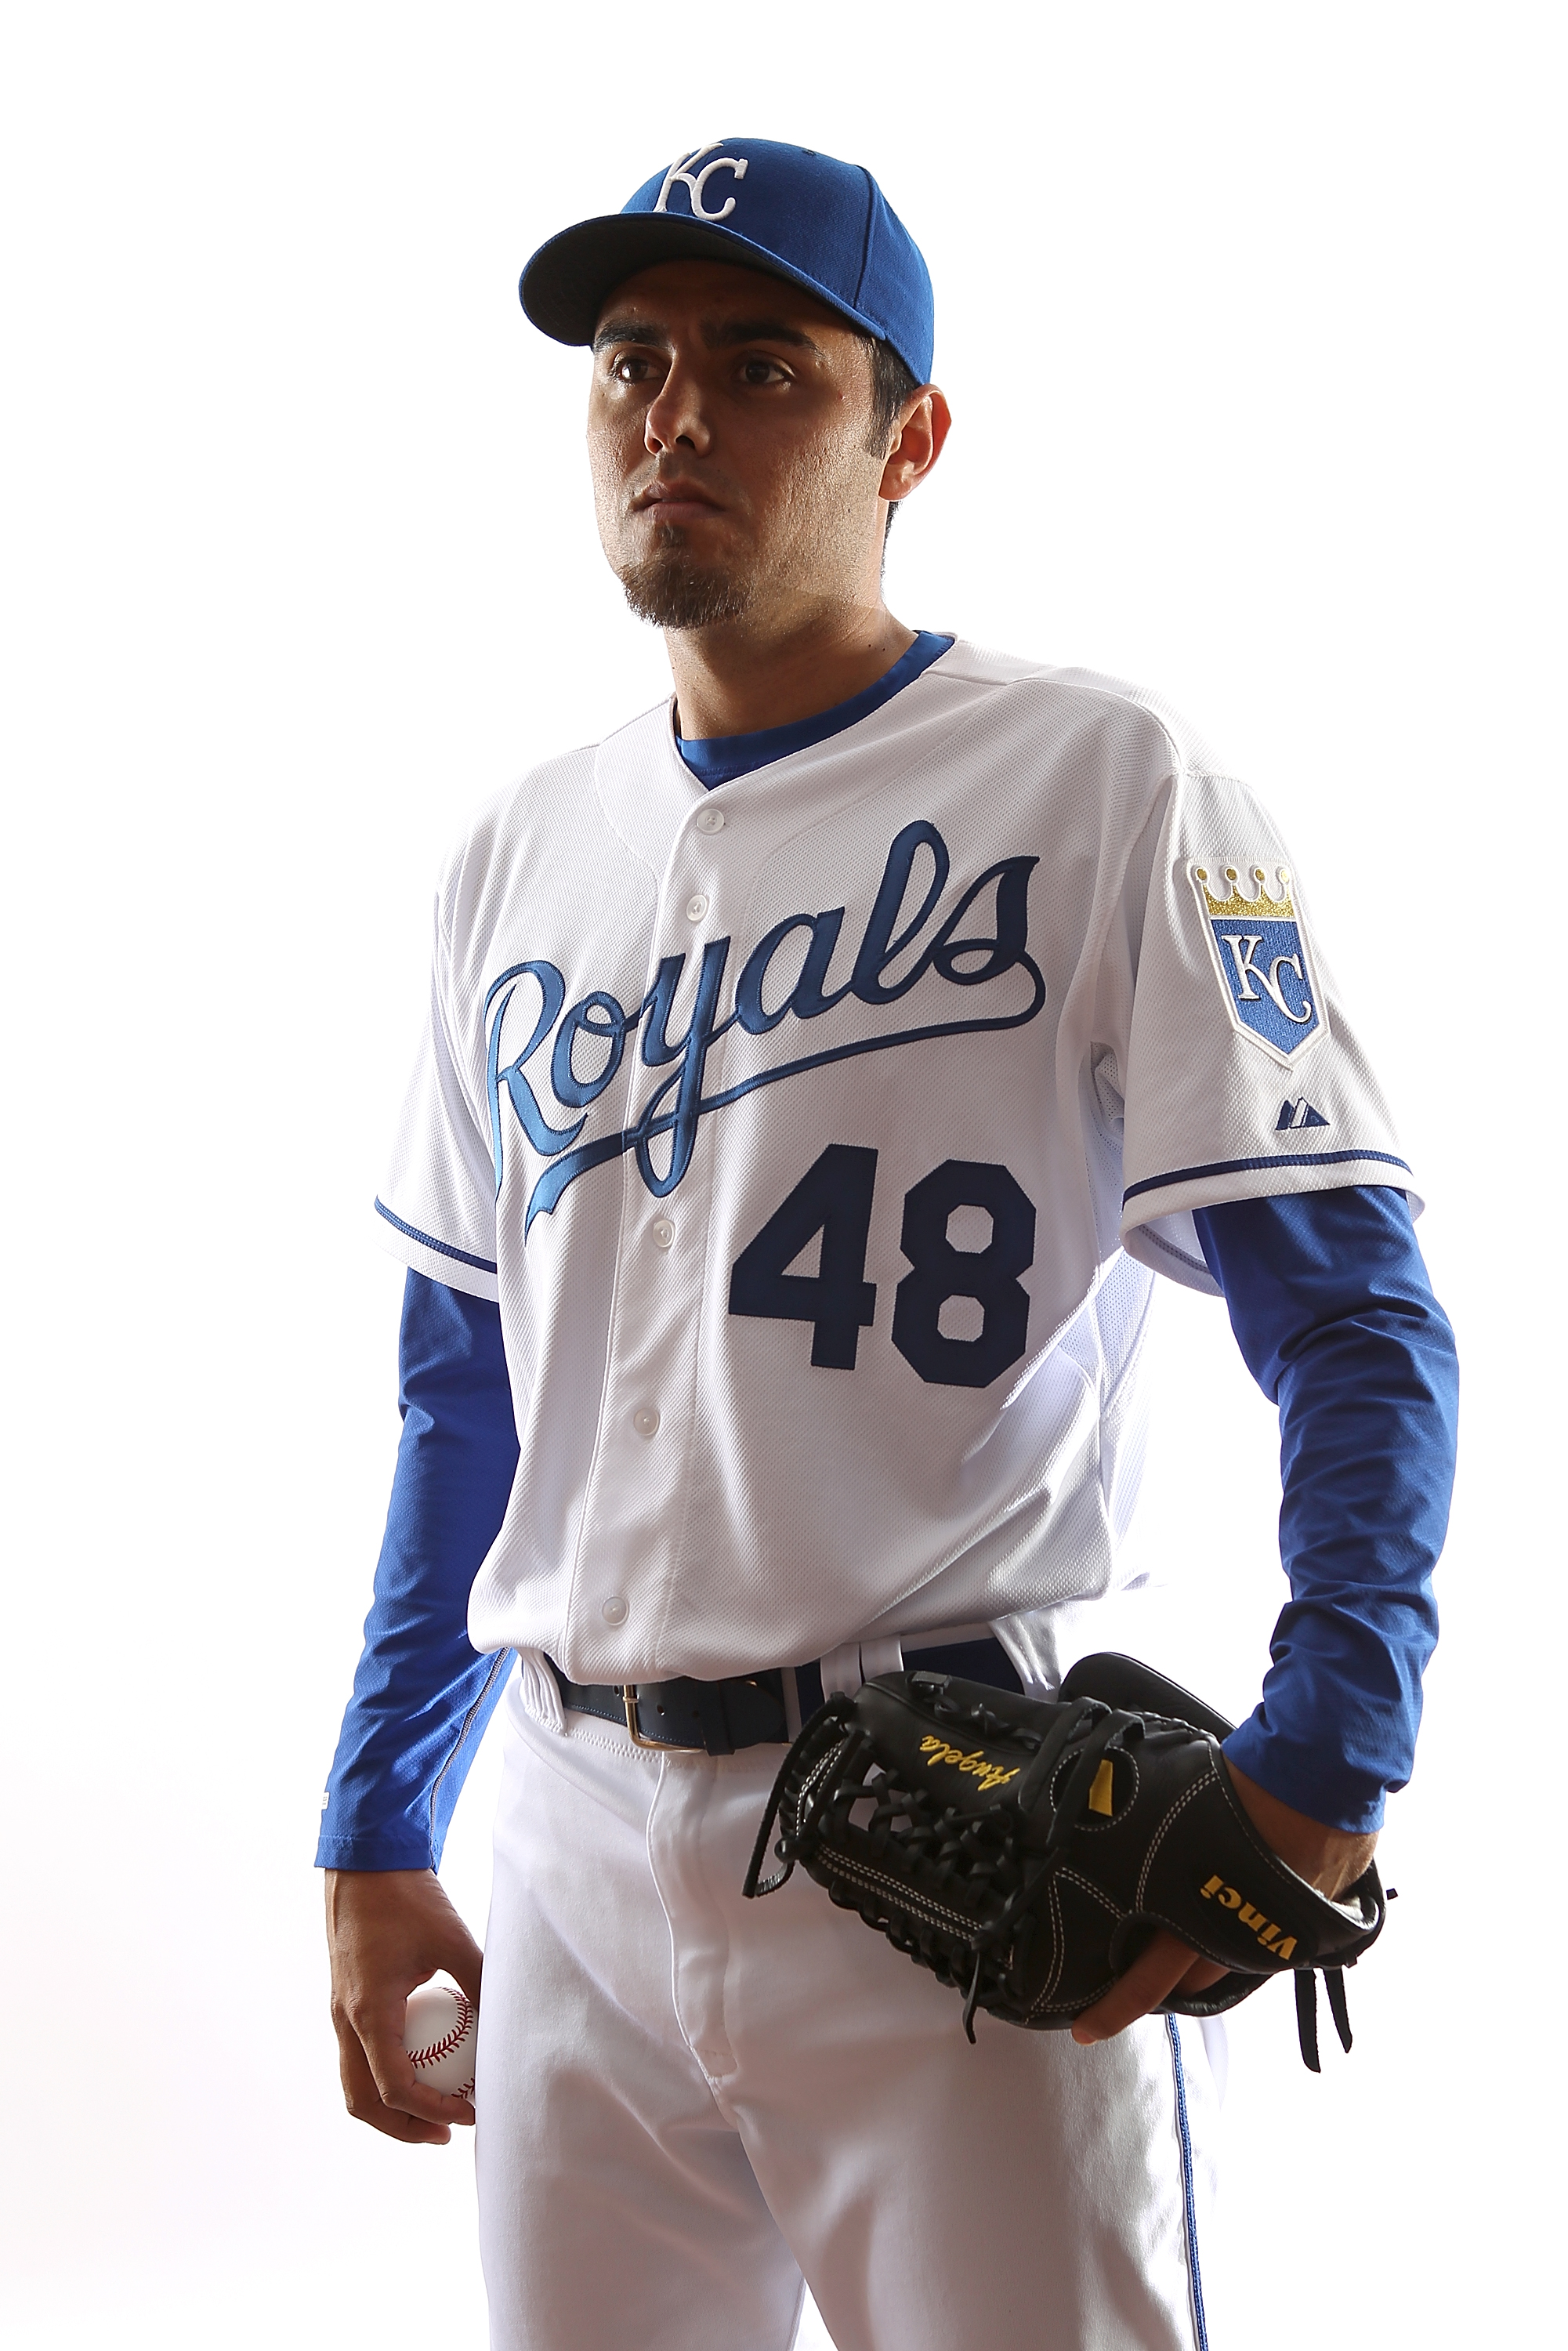 SURPRISE, AZ - FEBRUARY 23:  Picther Joakim Soria #48 of the Kansas City Royals poses for a portrait during Spring Training Media Day on February 23, 2011 at Suprise Stadium in Surprise, Arizona..  (Photo by Jonathan Ferrey/Getty Images)